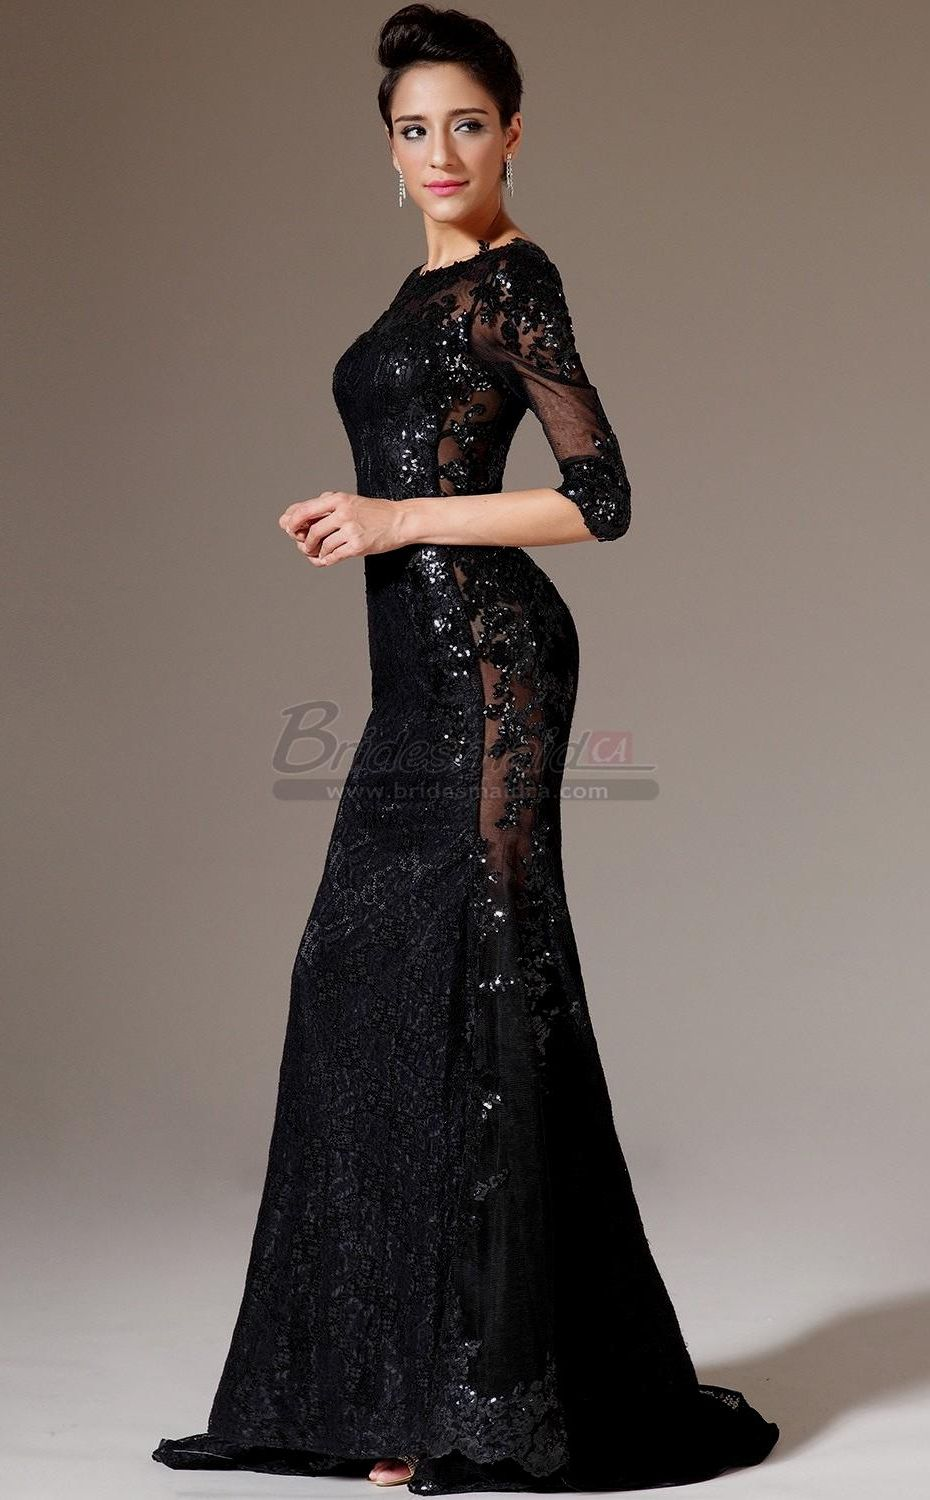 780e8198a63 Black Long Sleeve Lace Bridesmaid Dresses